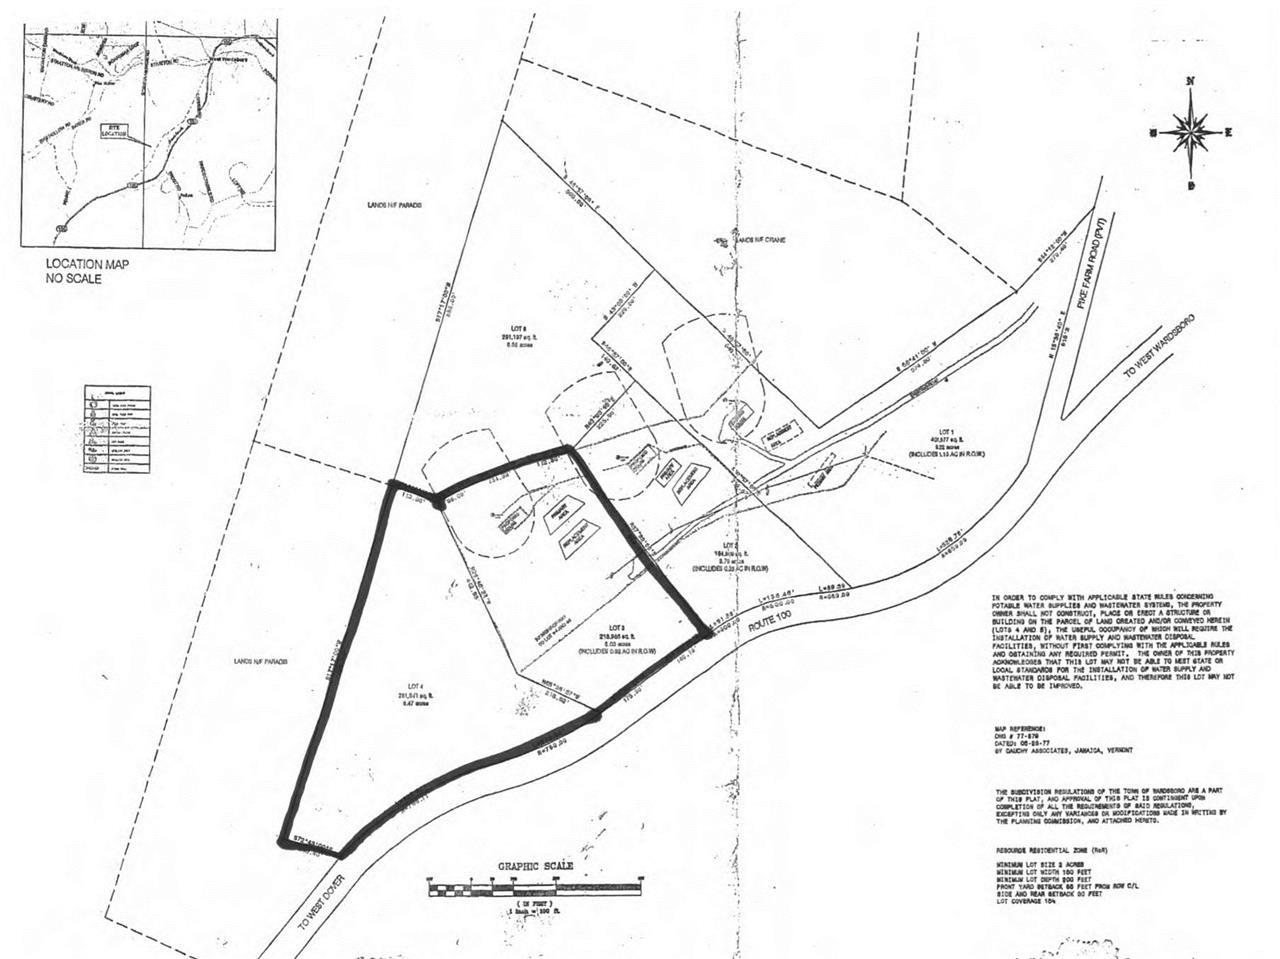 Pike Farm Road lot #3 and #4 are part of a 5 lot...